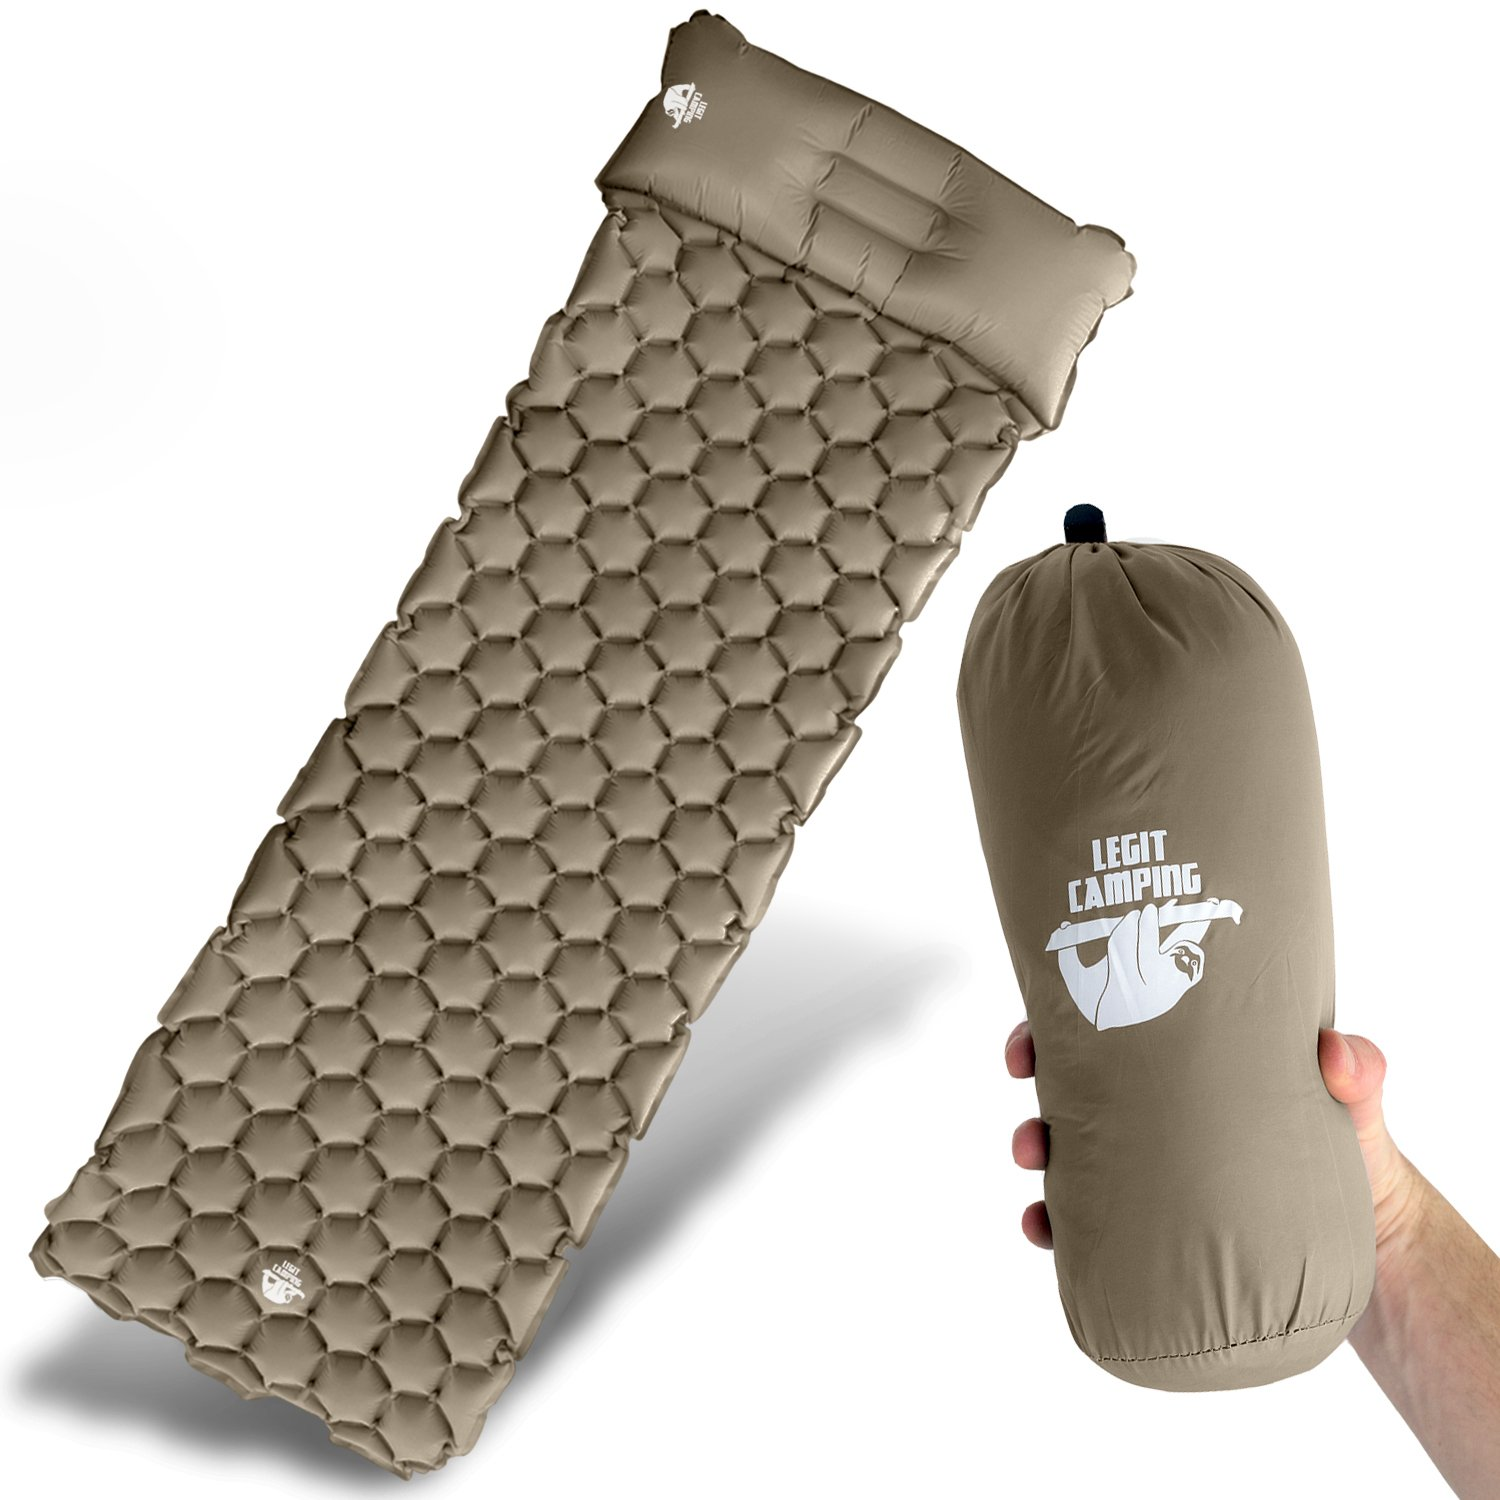 Legit Camping Sleeping Pad Camping Mat by The Most Comfortable Sleeping Mat - Rolls Up Tight - Air Support Cells Transform Your Camping Mattress and Camping Pad - Best Outdoor Sleep (Khaki) by Legit Camping